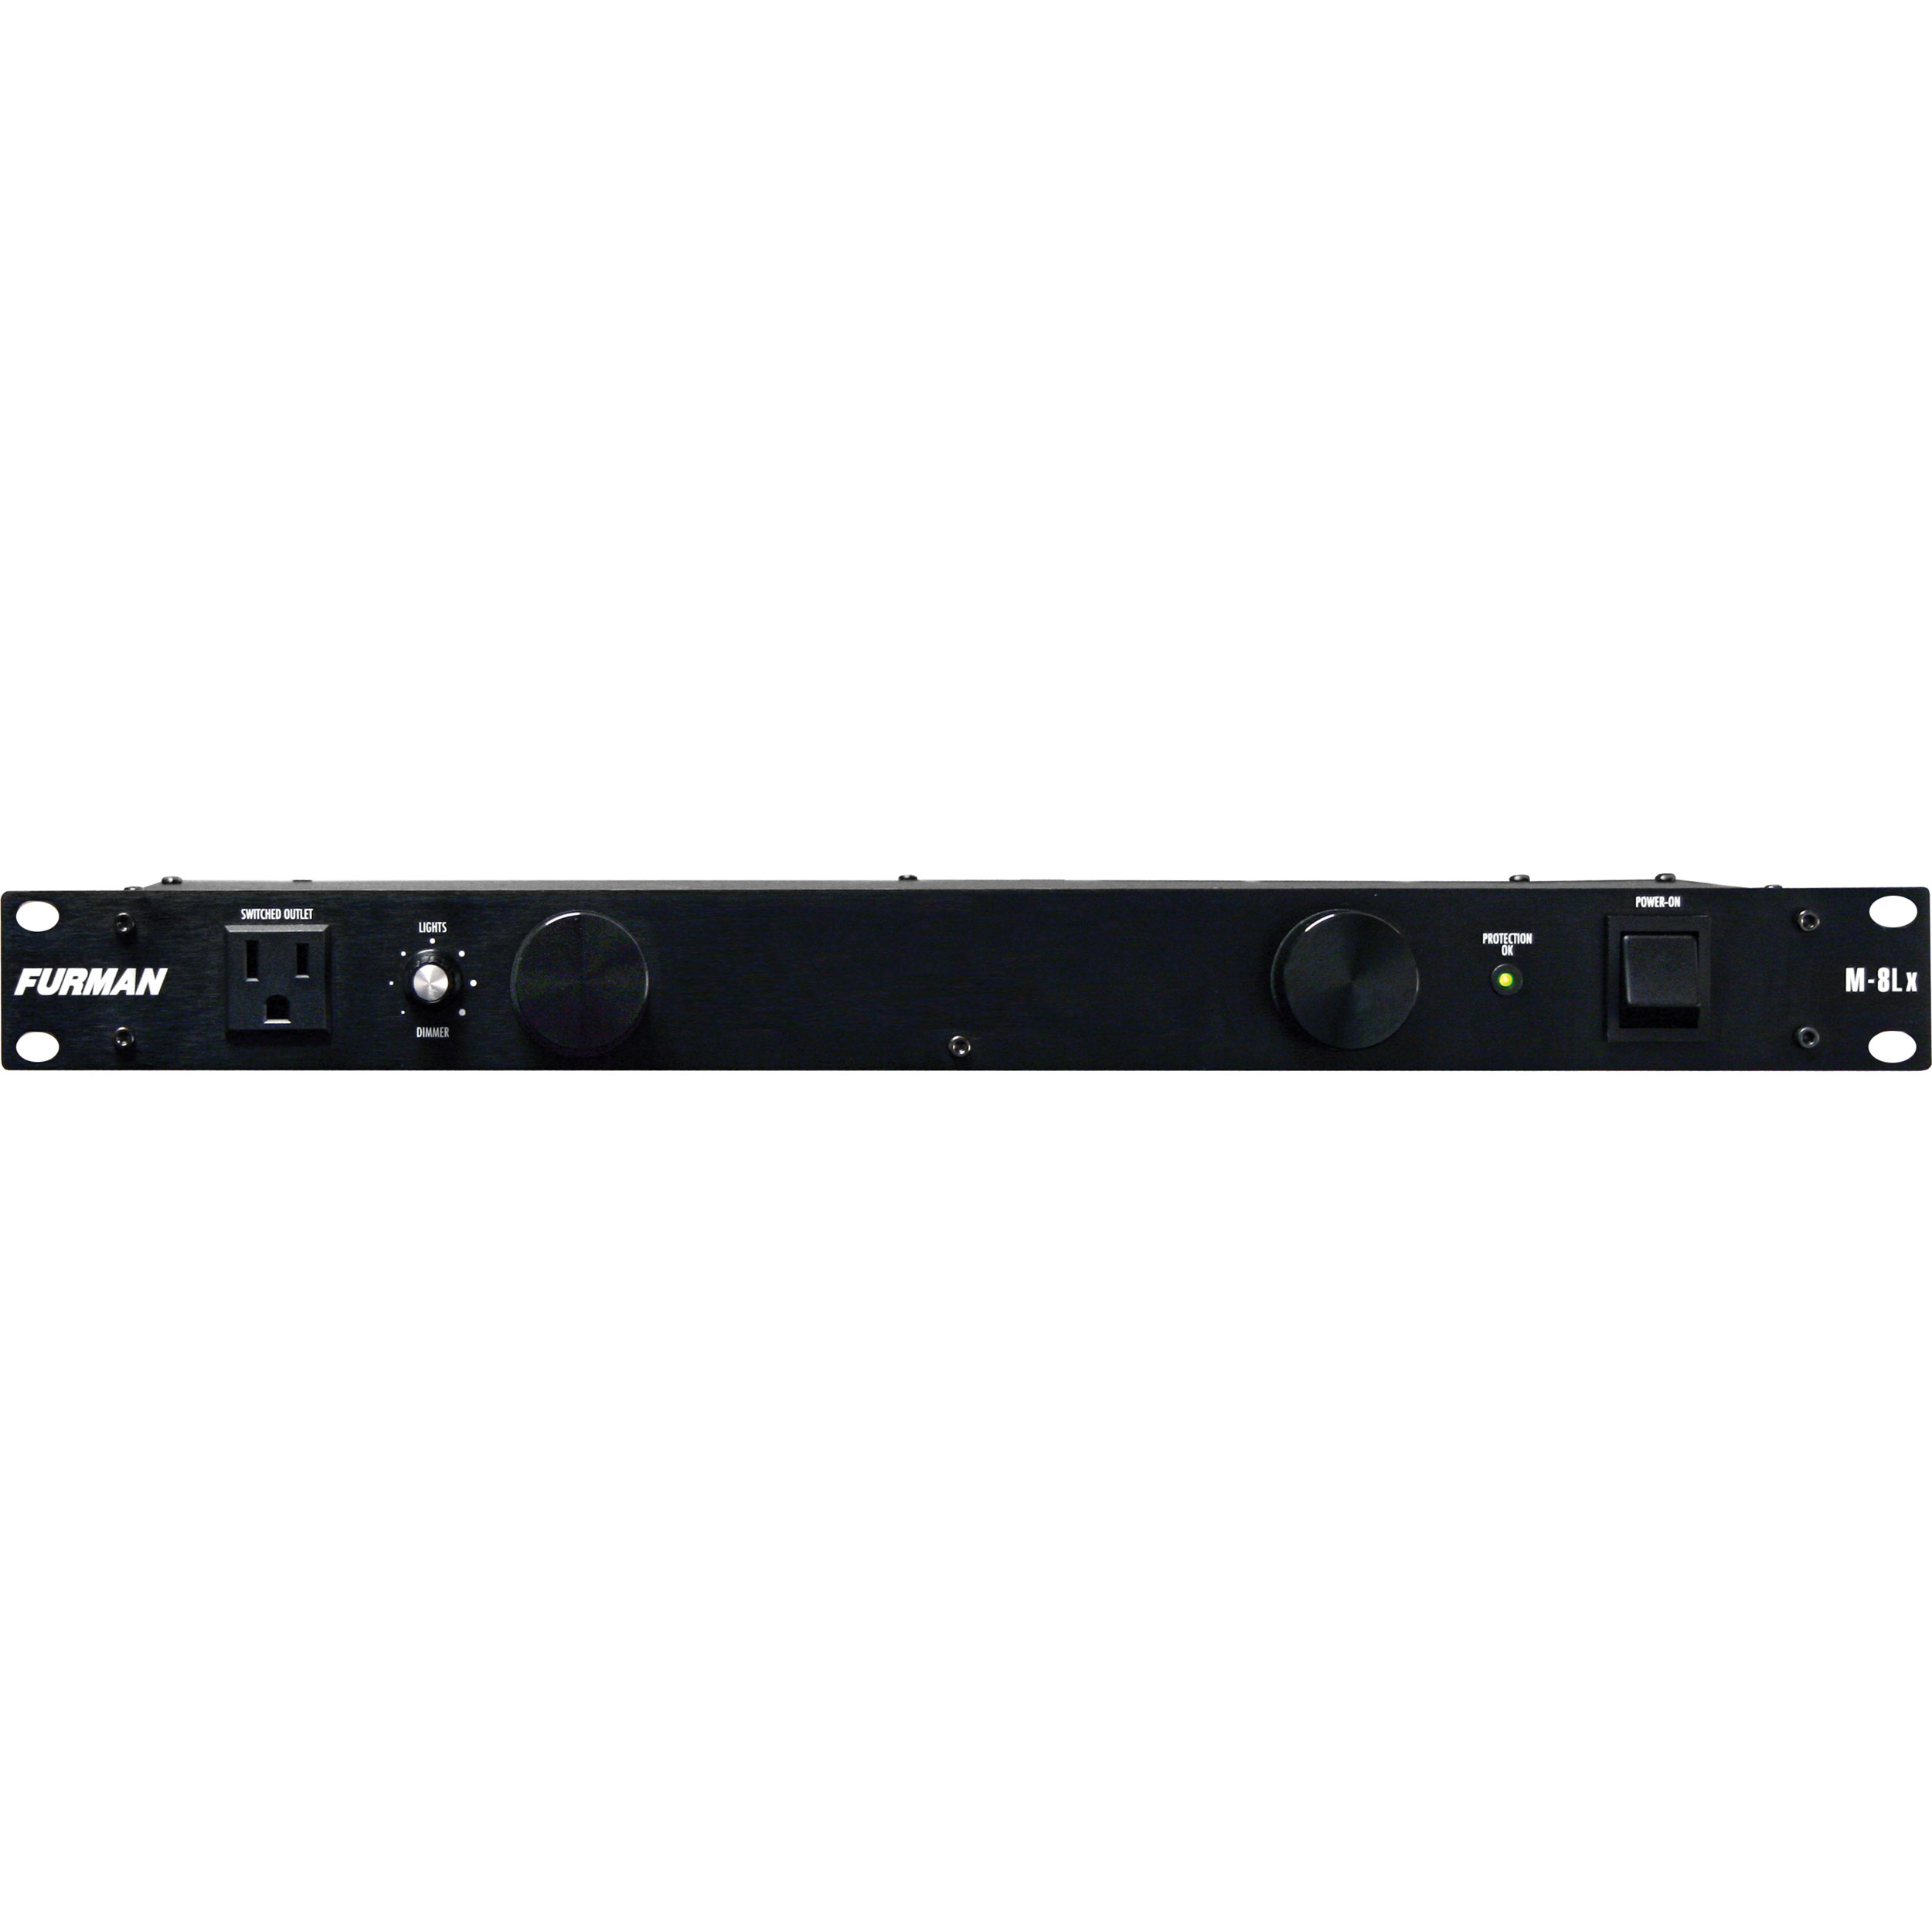 Furman 15 Amp Standard Power Conditioner with 8 Outlets